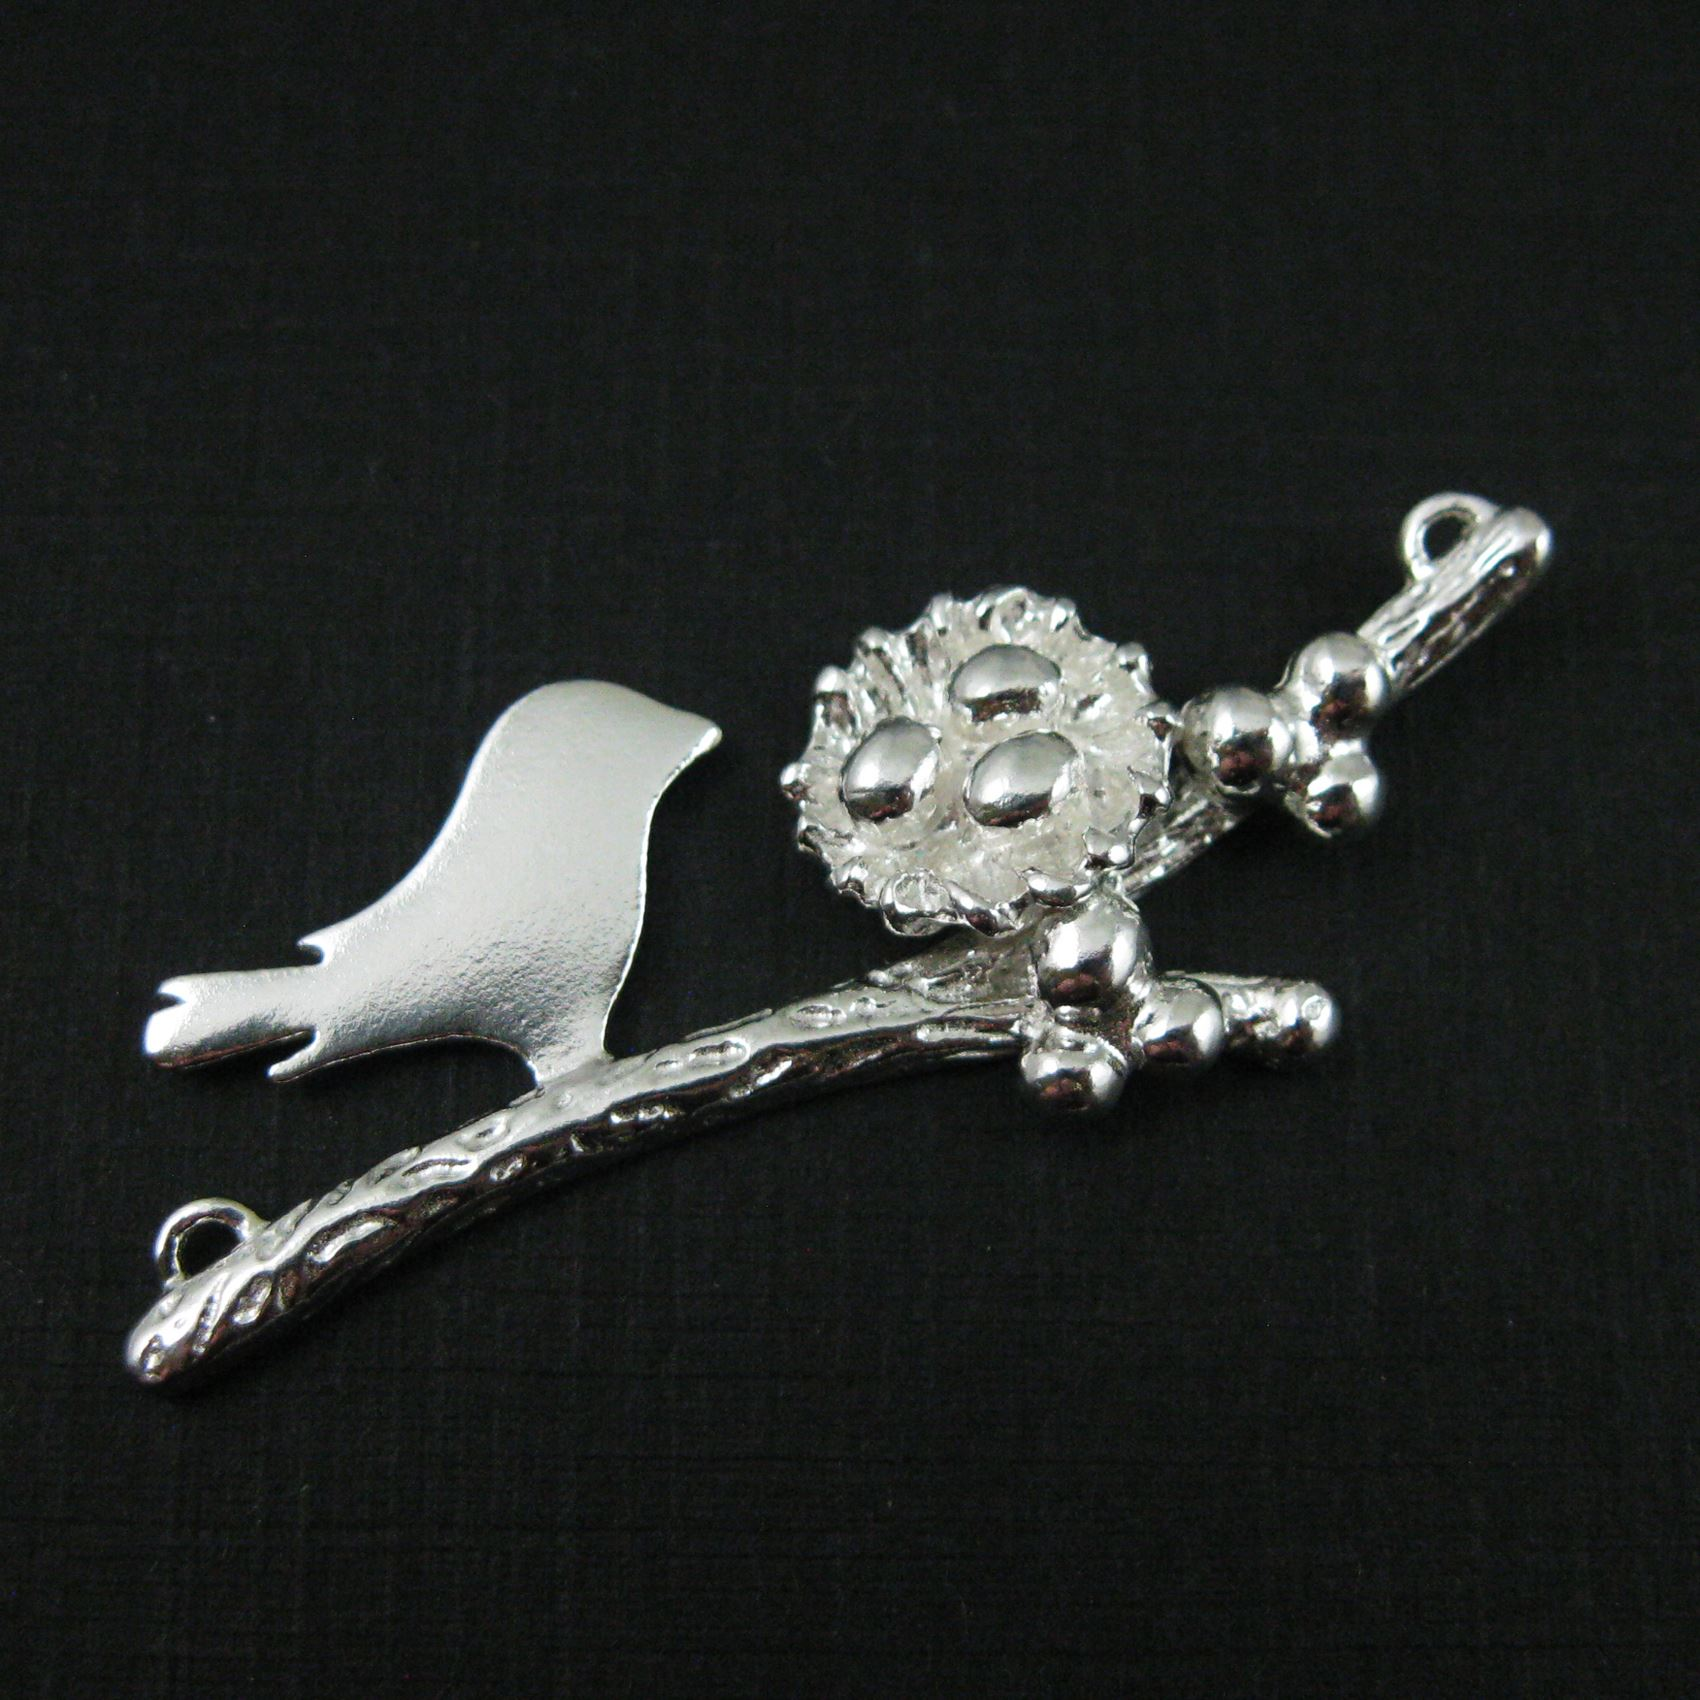 925 Sterling Silver, Mother and Baby Bird Branch and Nest Connector - 3 Eggs - 48mm